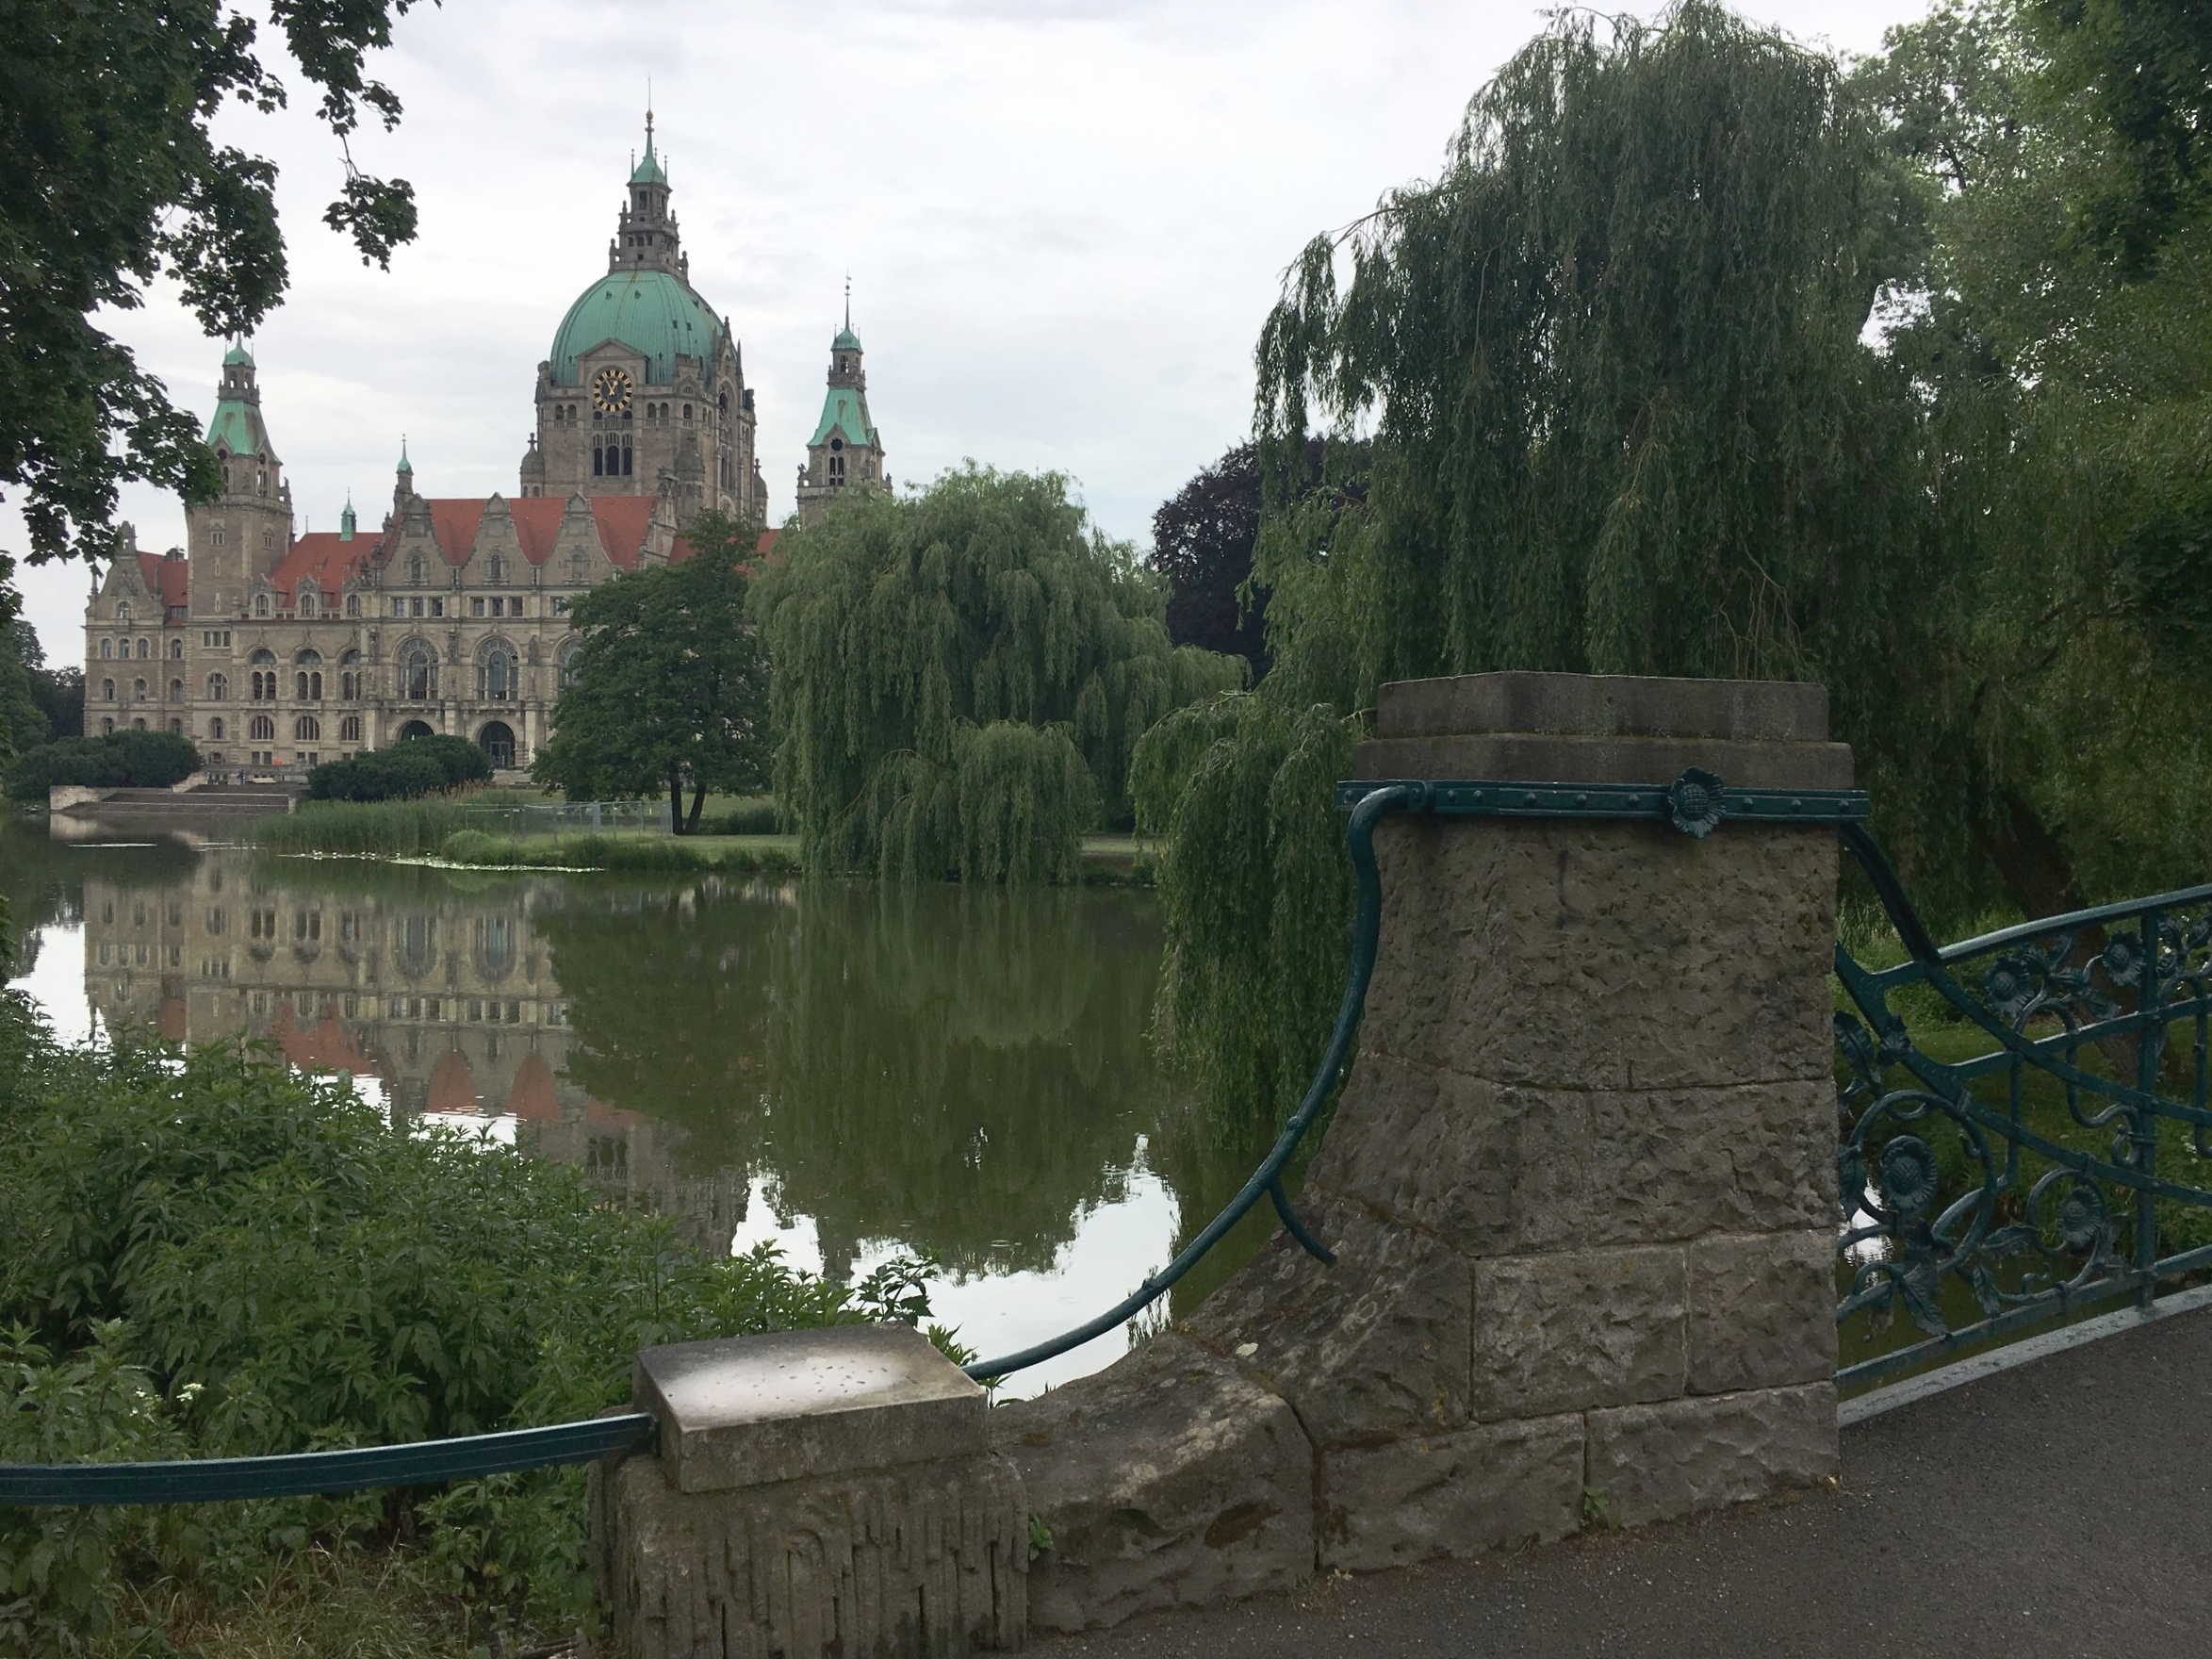 Hannover_Maschsee_Neue-Rathaus-Hannover